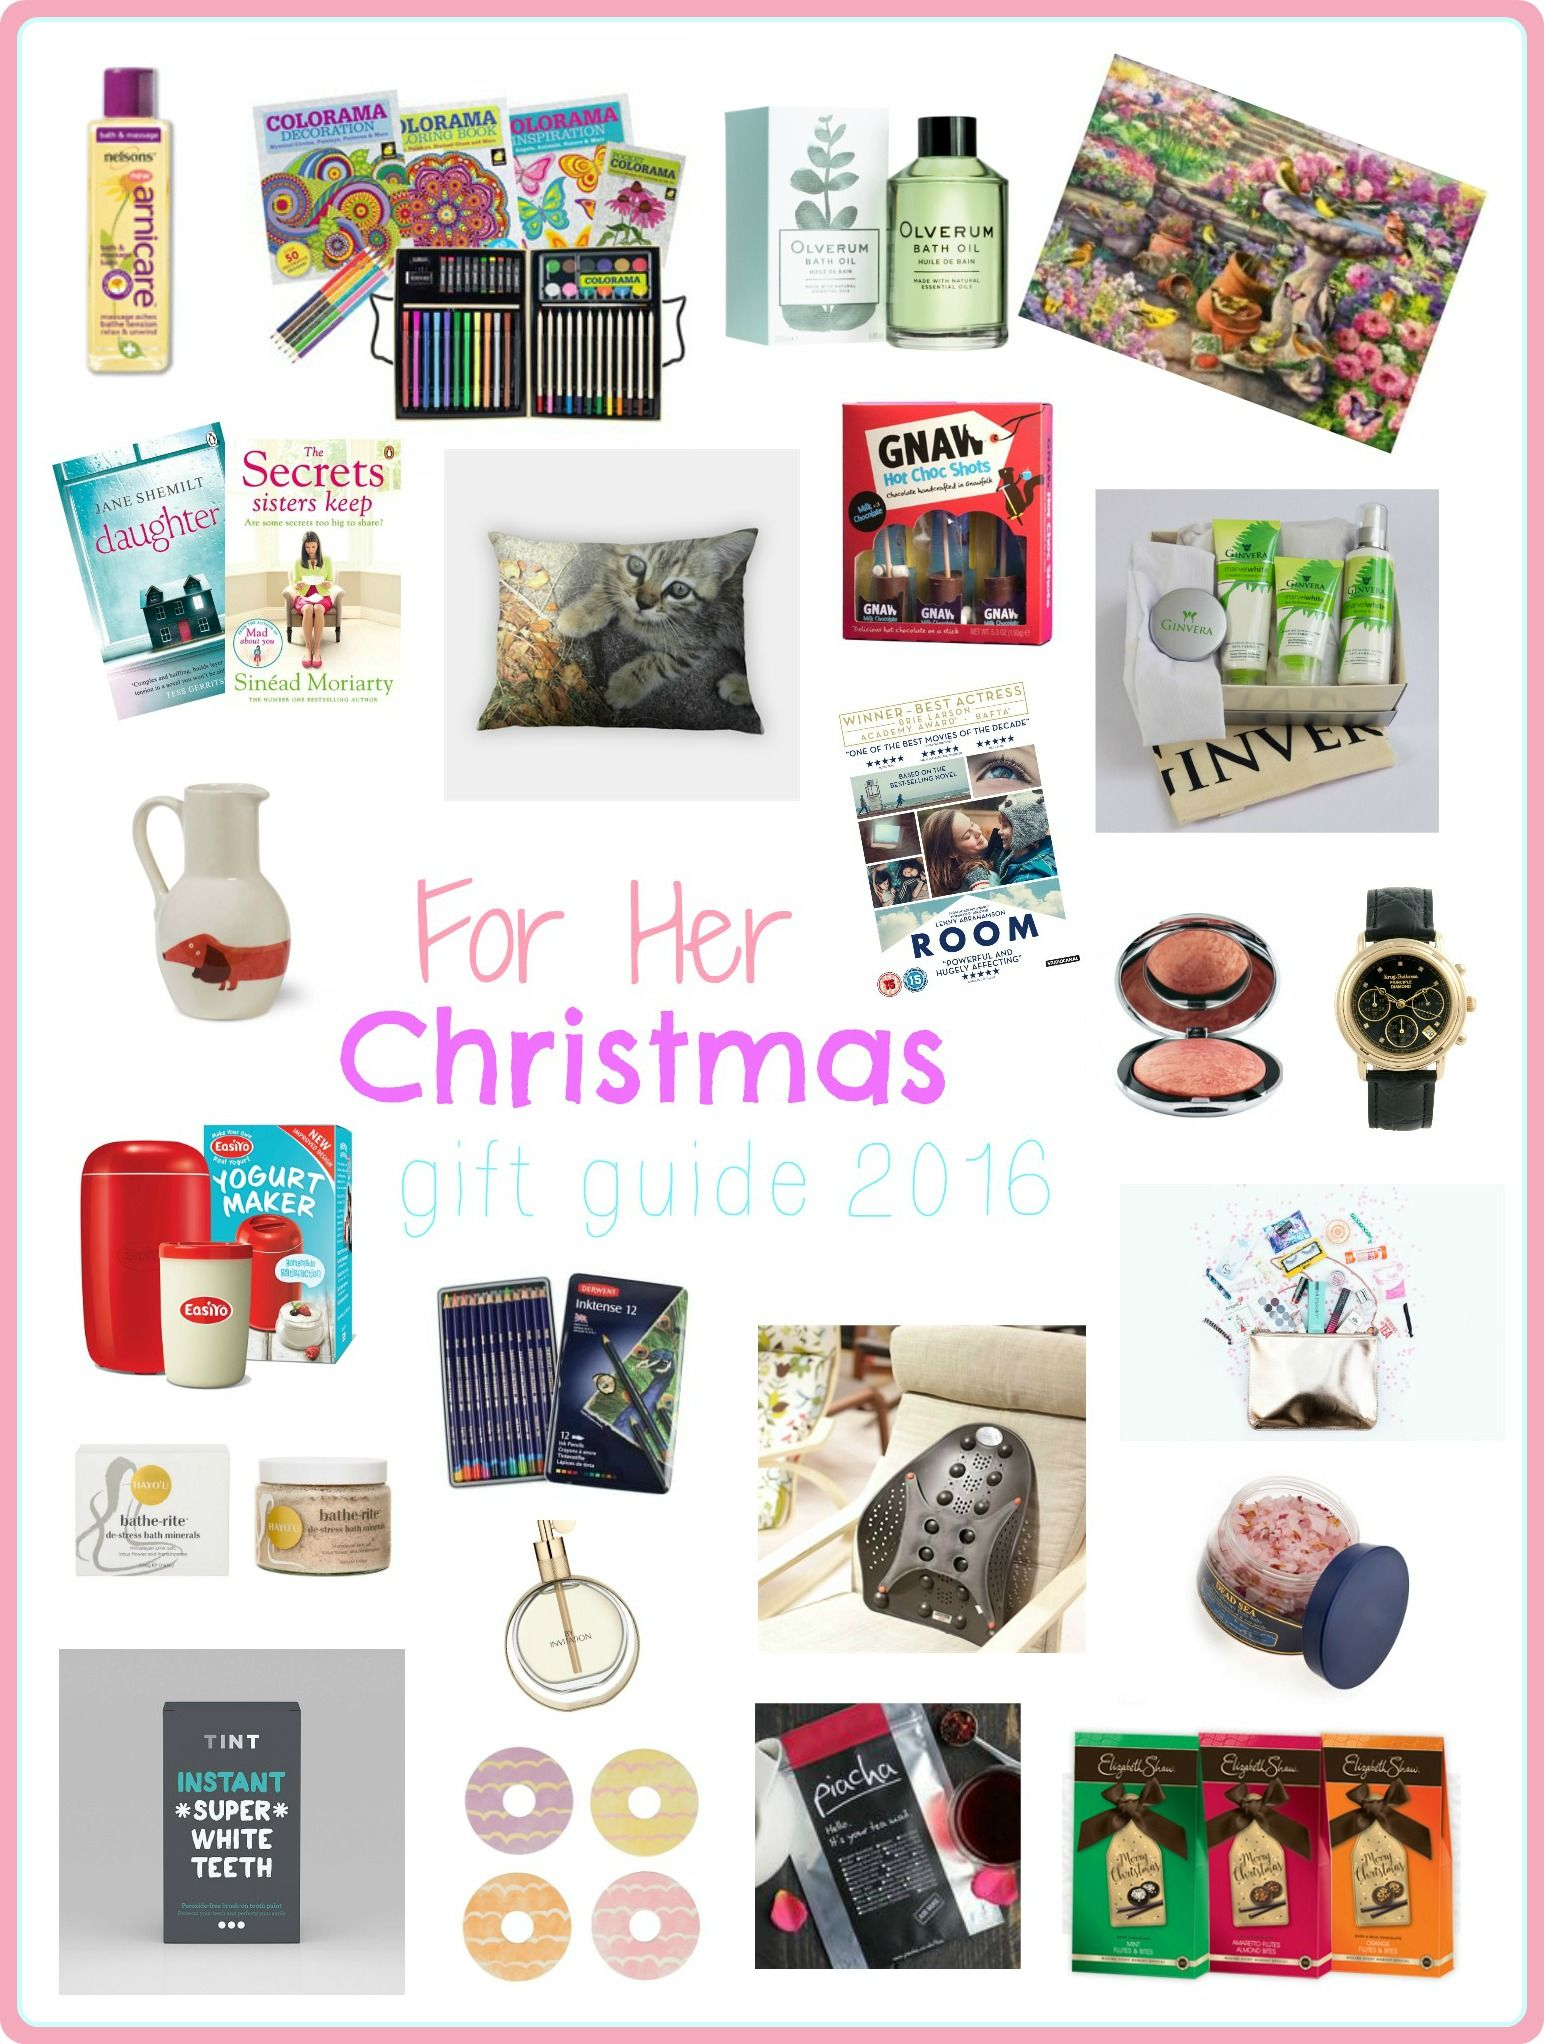 Top Gifts For Christmas 2016 For Her Part - 46: For Her Christmas Gift Guide 2016